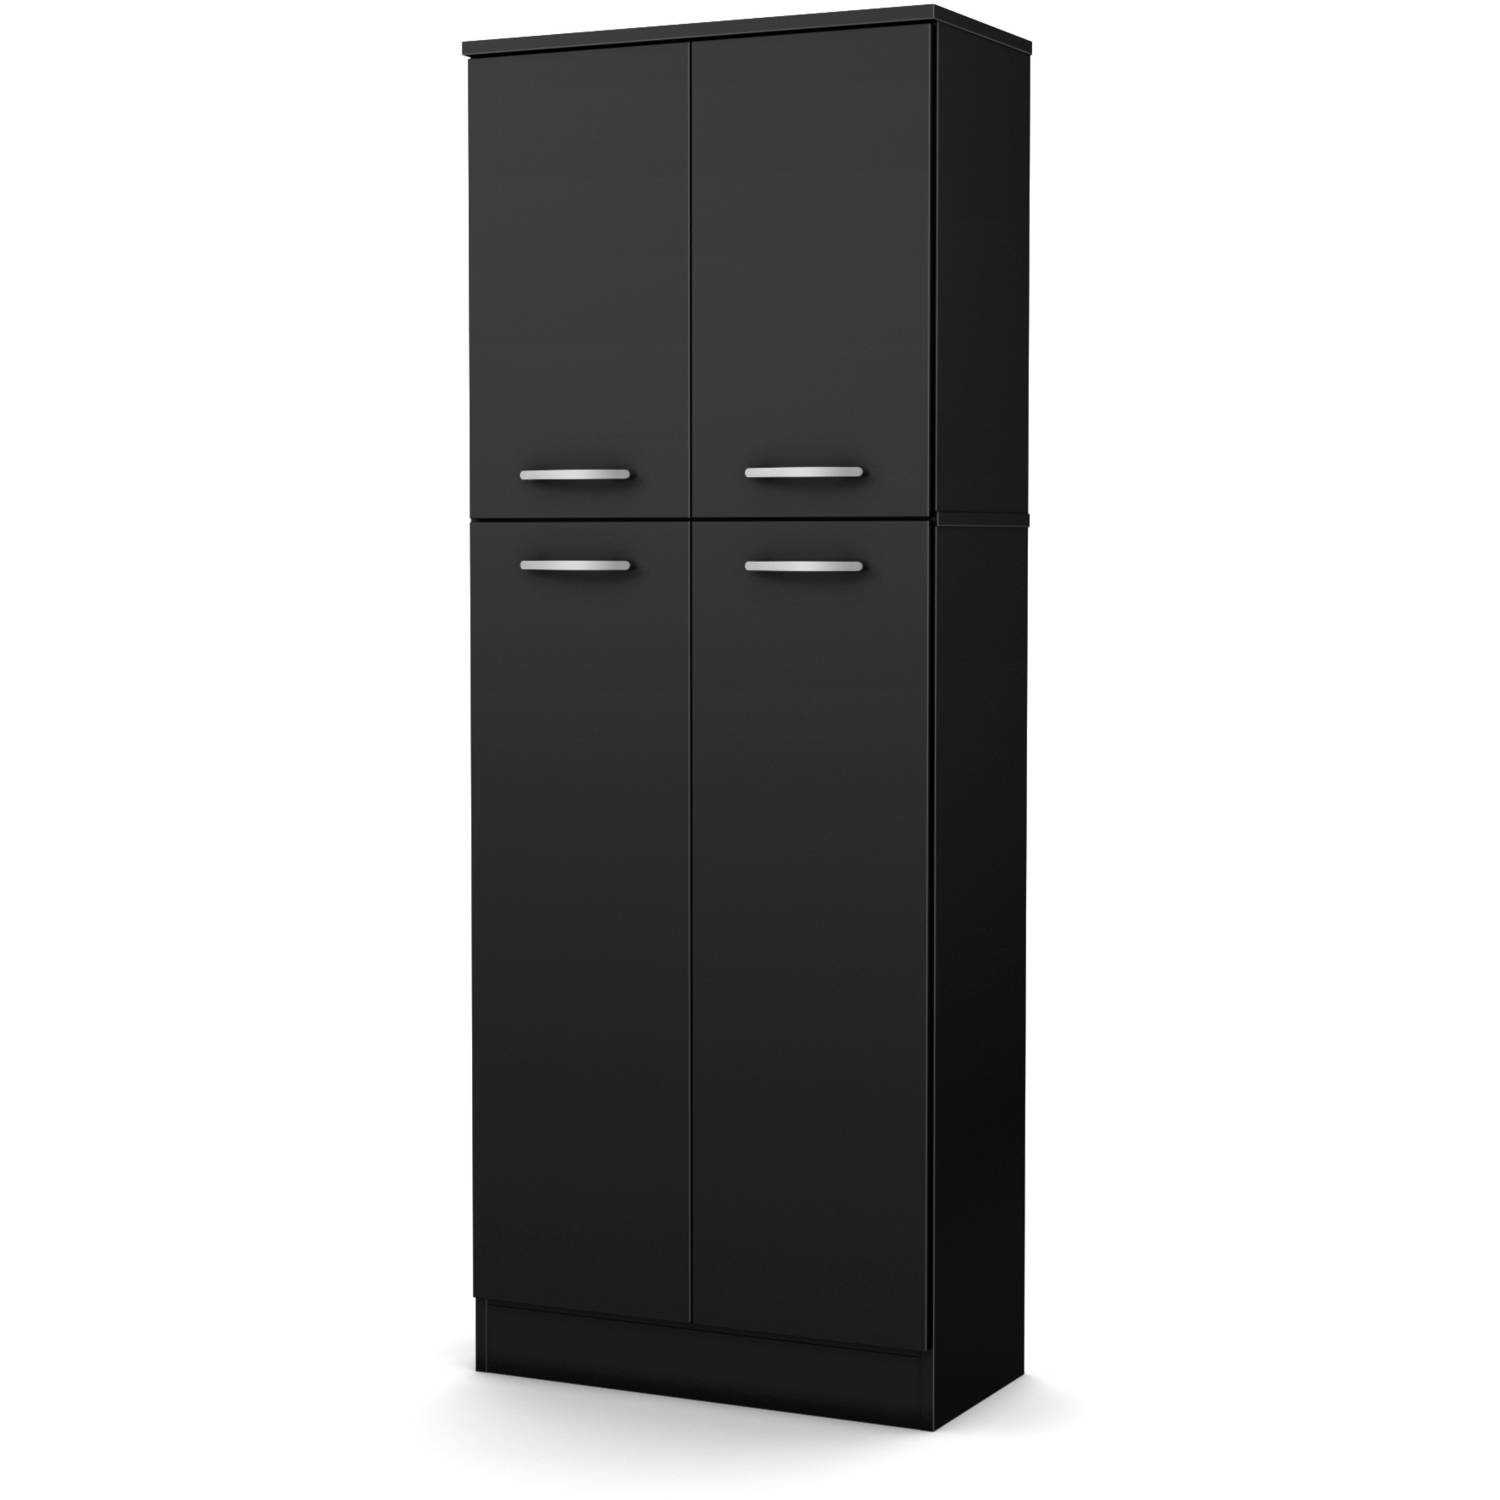 4 Door Storage Pantry Kitchen Food Organizer Shelves Cupboard Tall